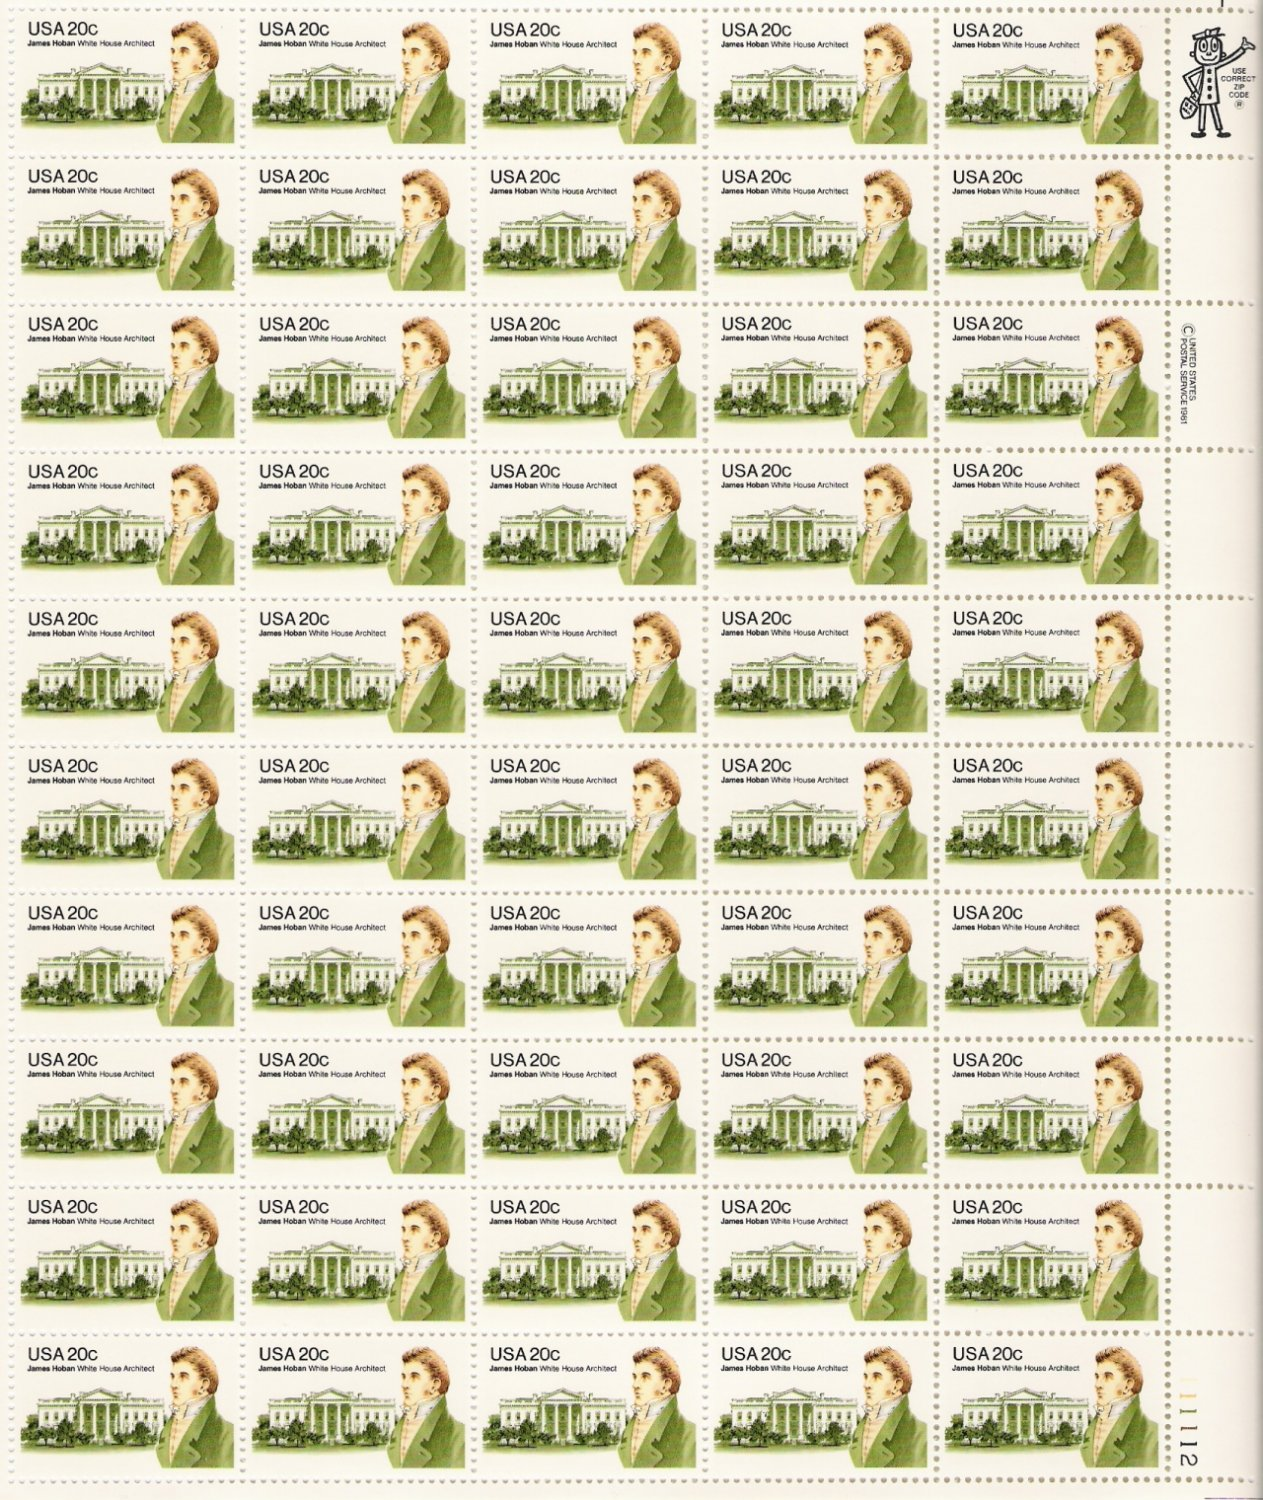 US Scott 1936 - Sheet of 50 - 20c James Hoban - Mint Never Hinged